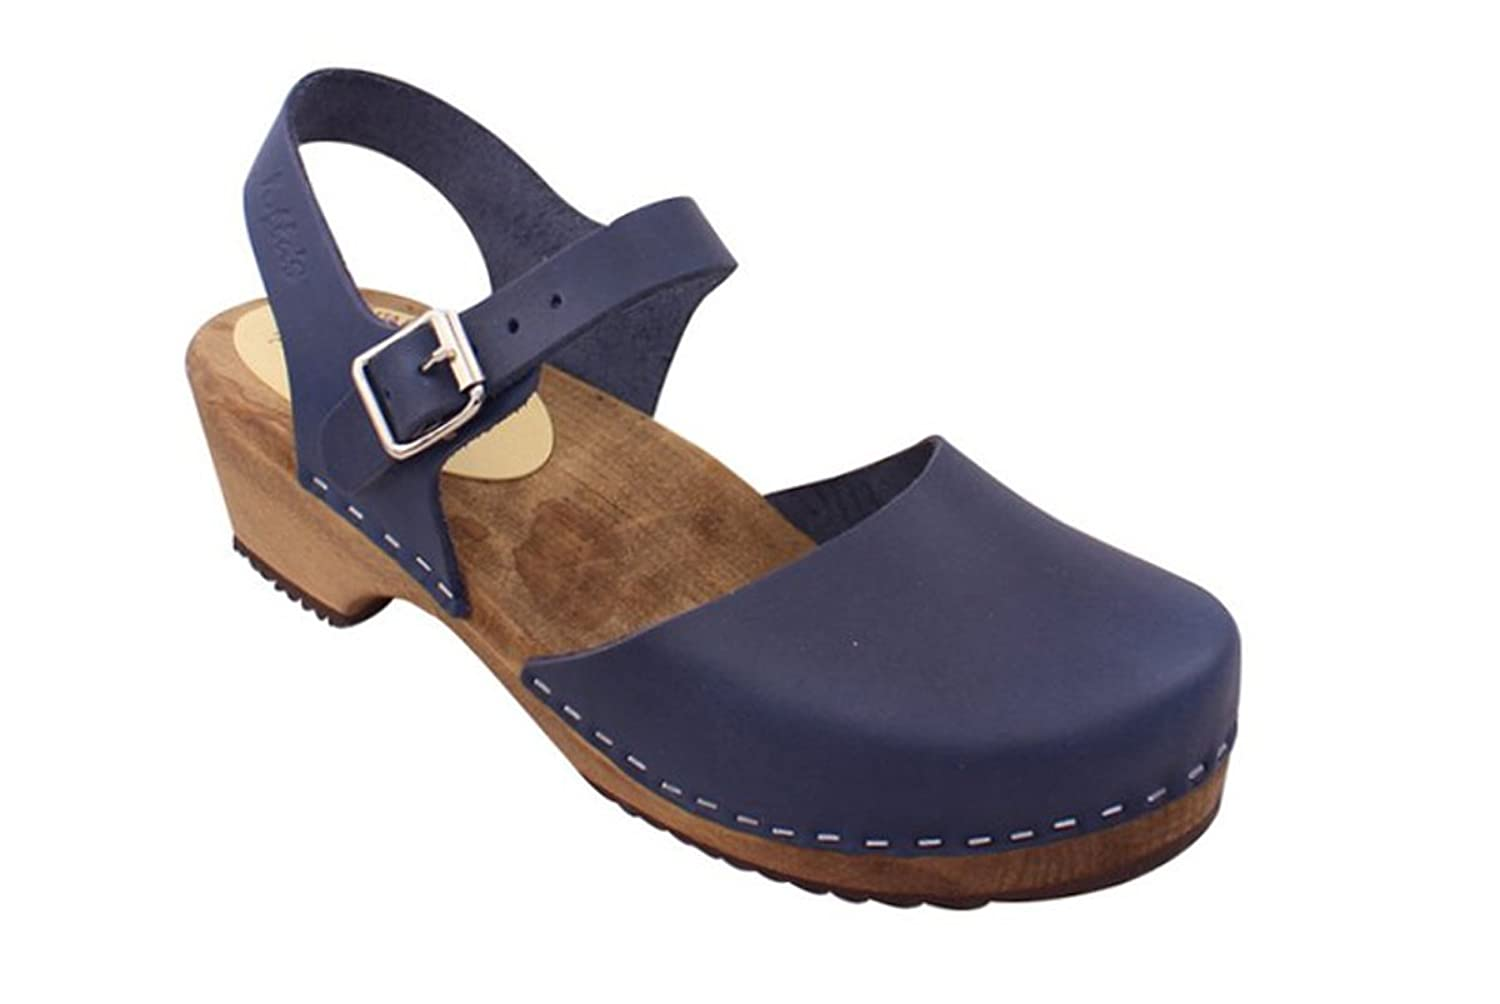 Lotta From Stockholm Swedish Clogs Low Wood In Navy On A Brown Base by Lotta From Stockholm